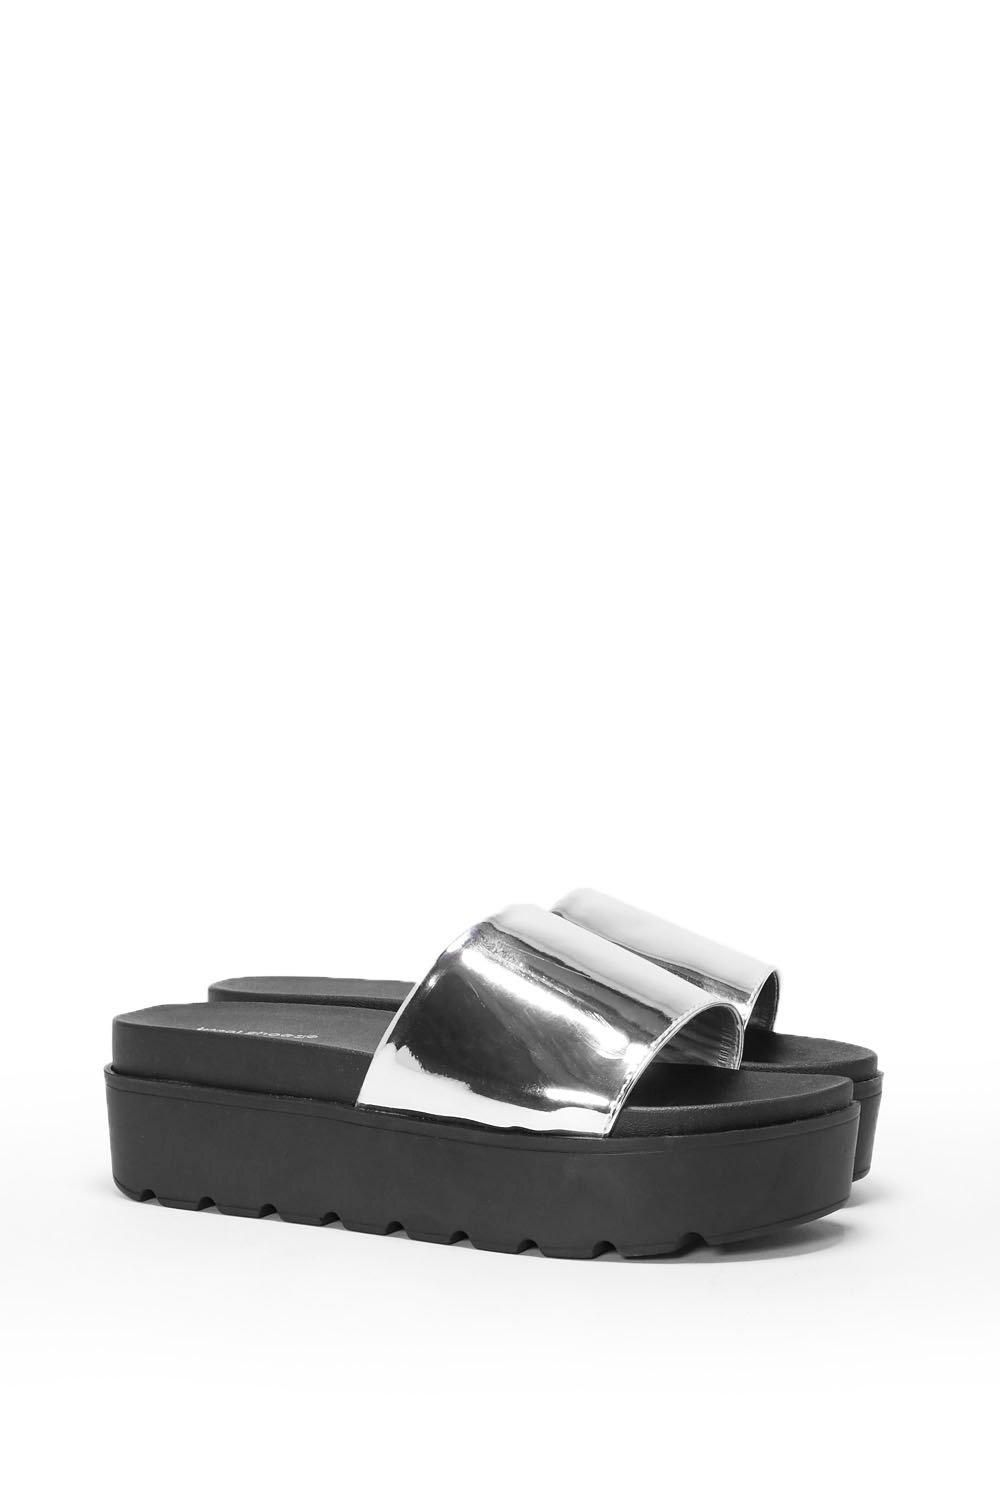 0ae91facbc1 Slide up to the proverbial swim meet in our Go Deep Slide Sandal